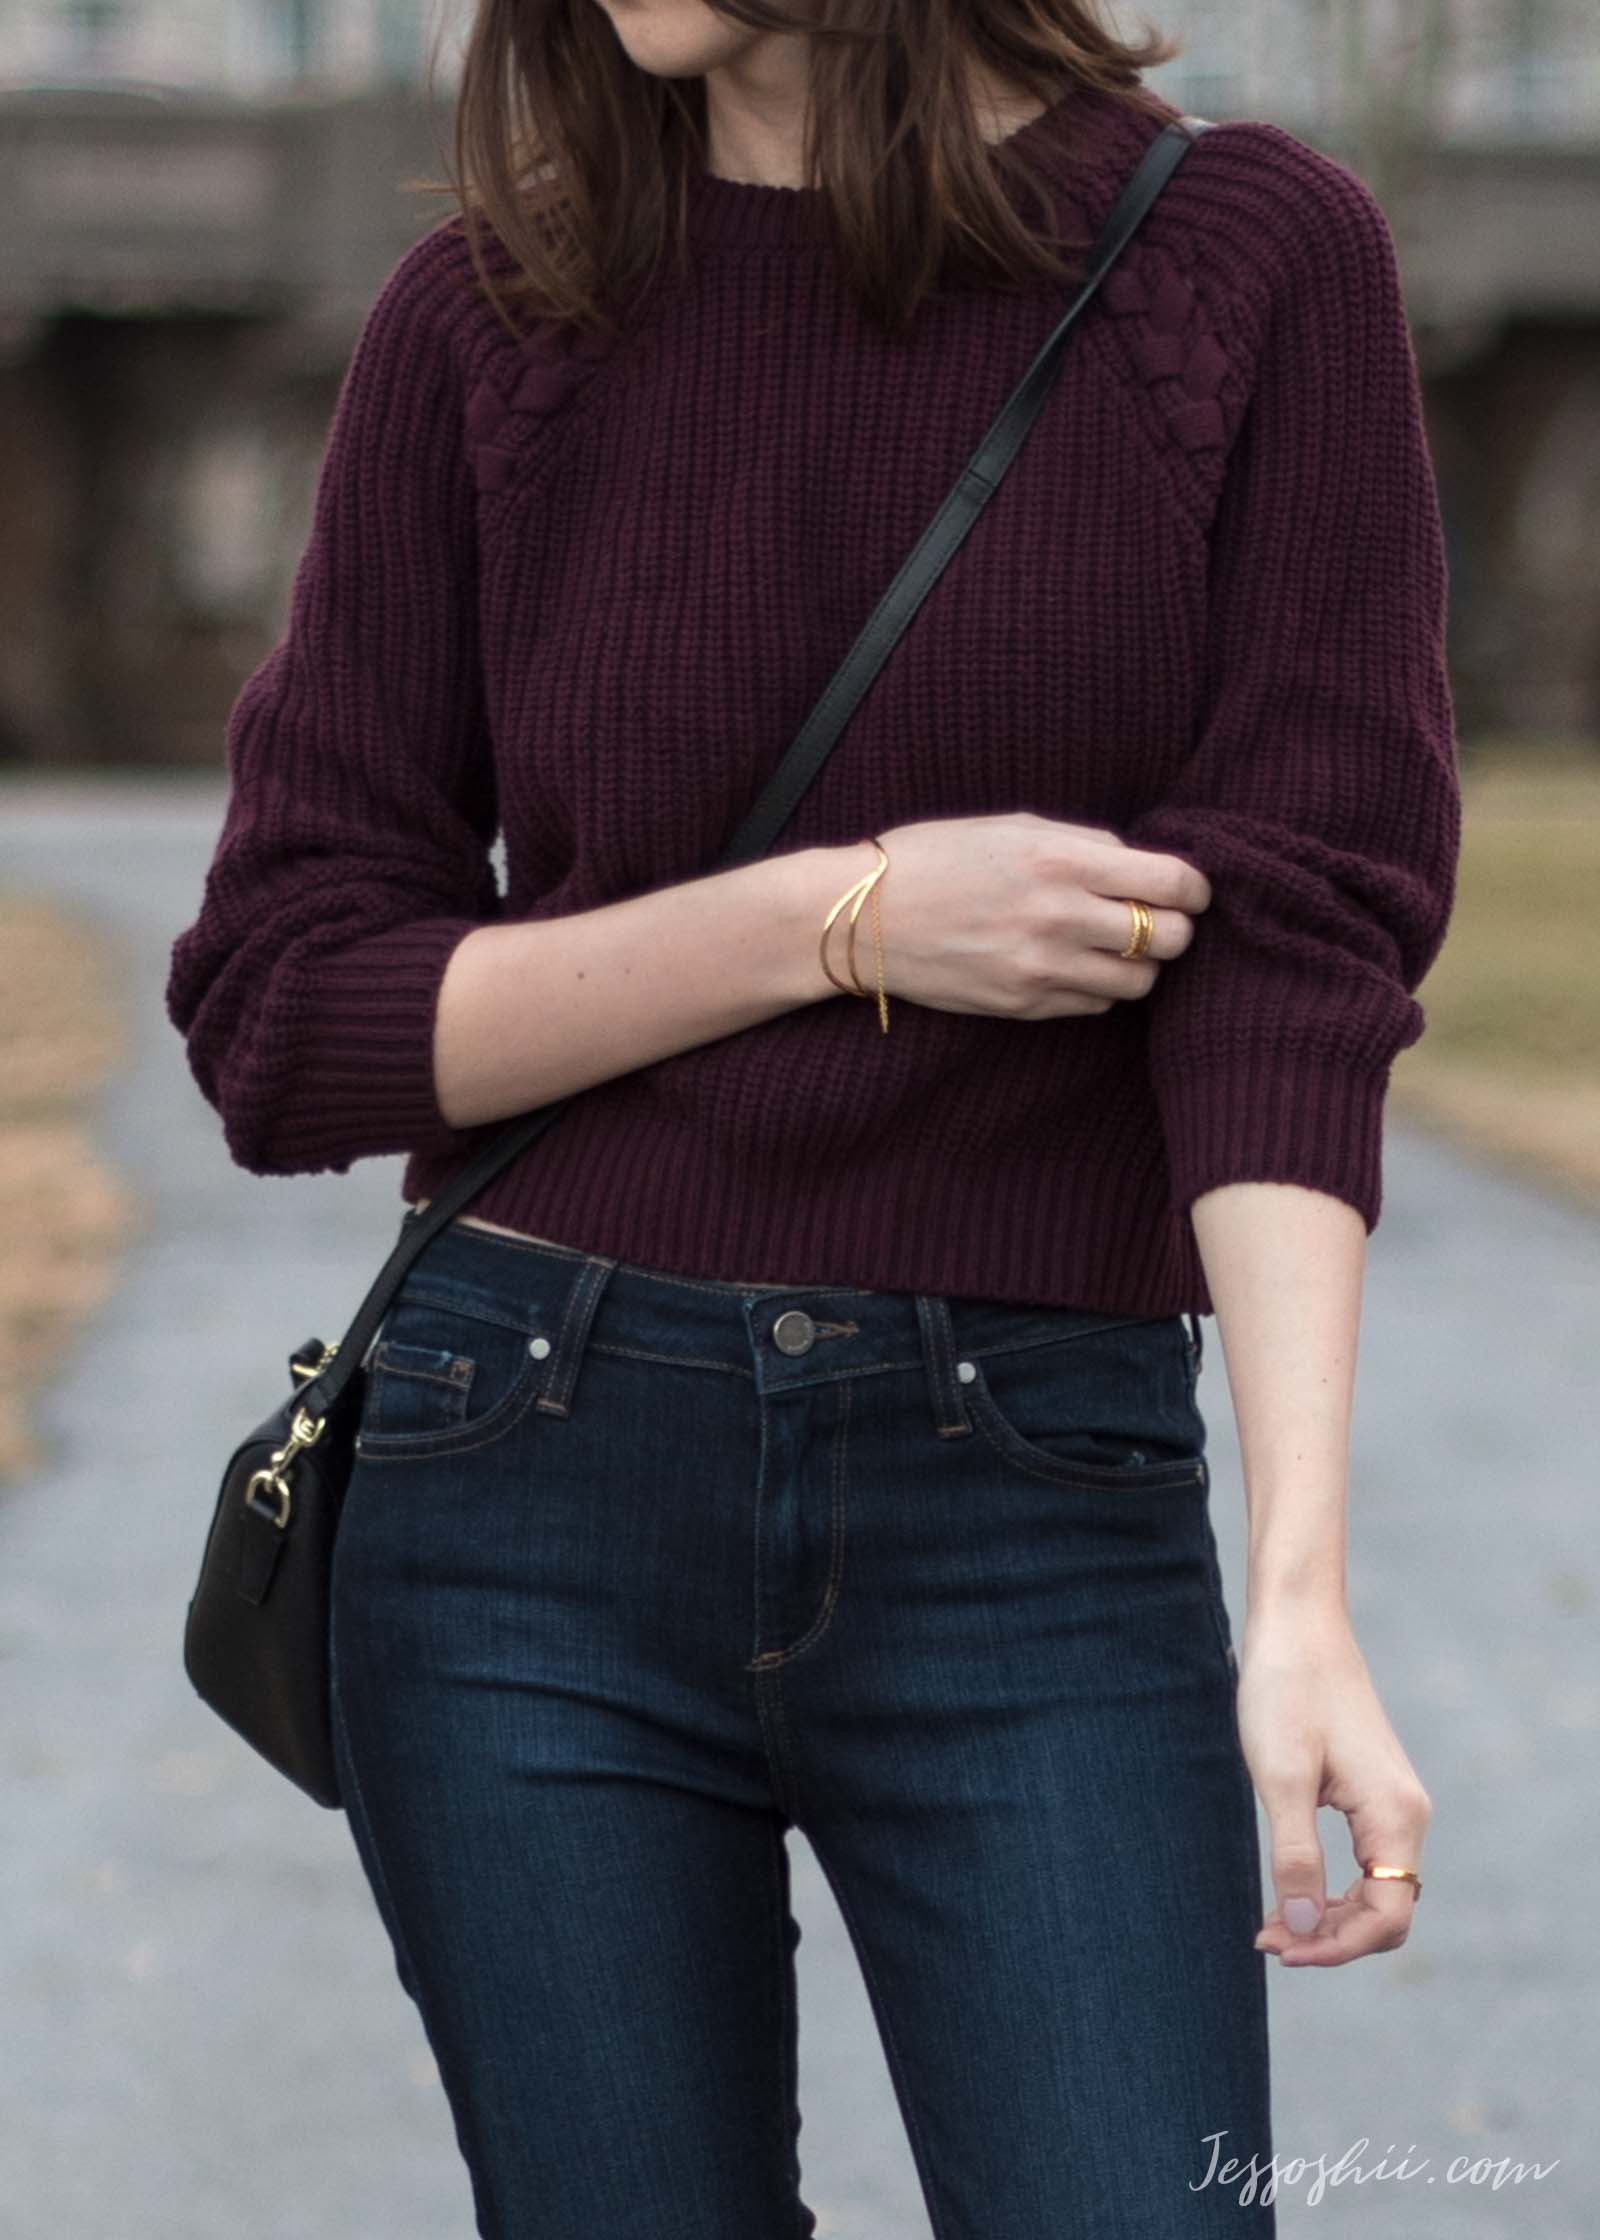 H&M burgundy cropped sweater